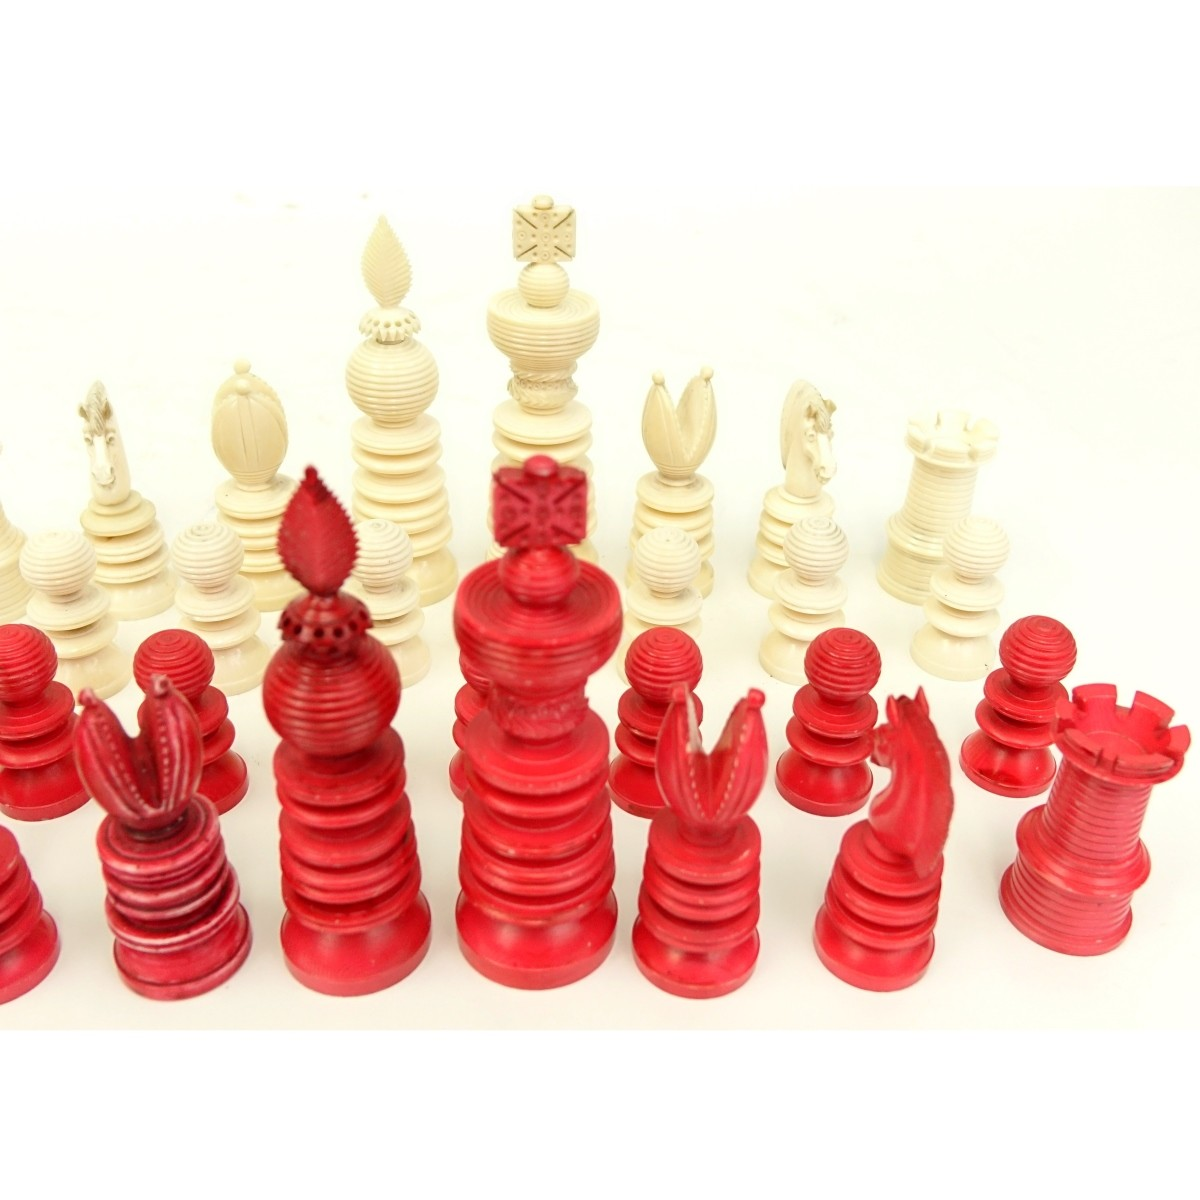 19th Century Staunton 32 Piece Chess Set